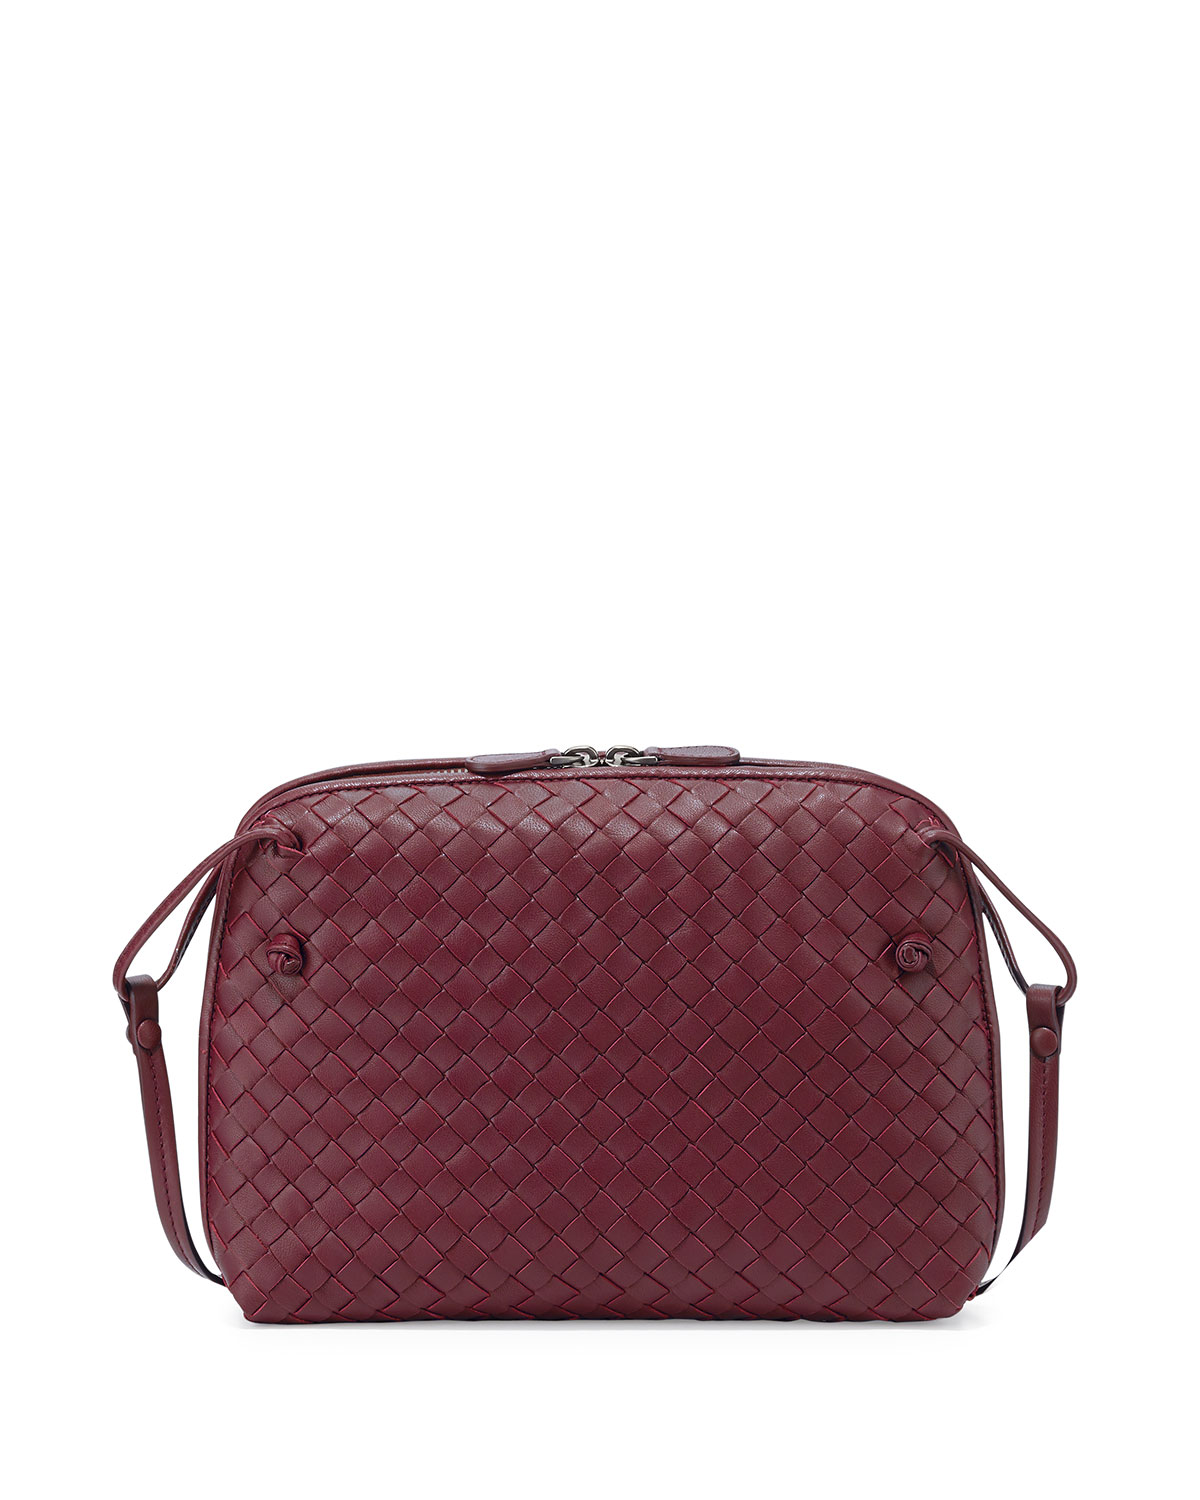 0289e9b8e9 Bottega Veneta Nodini Messenger Bag